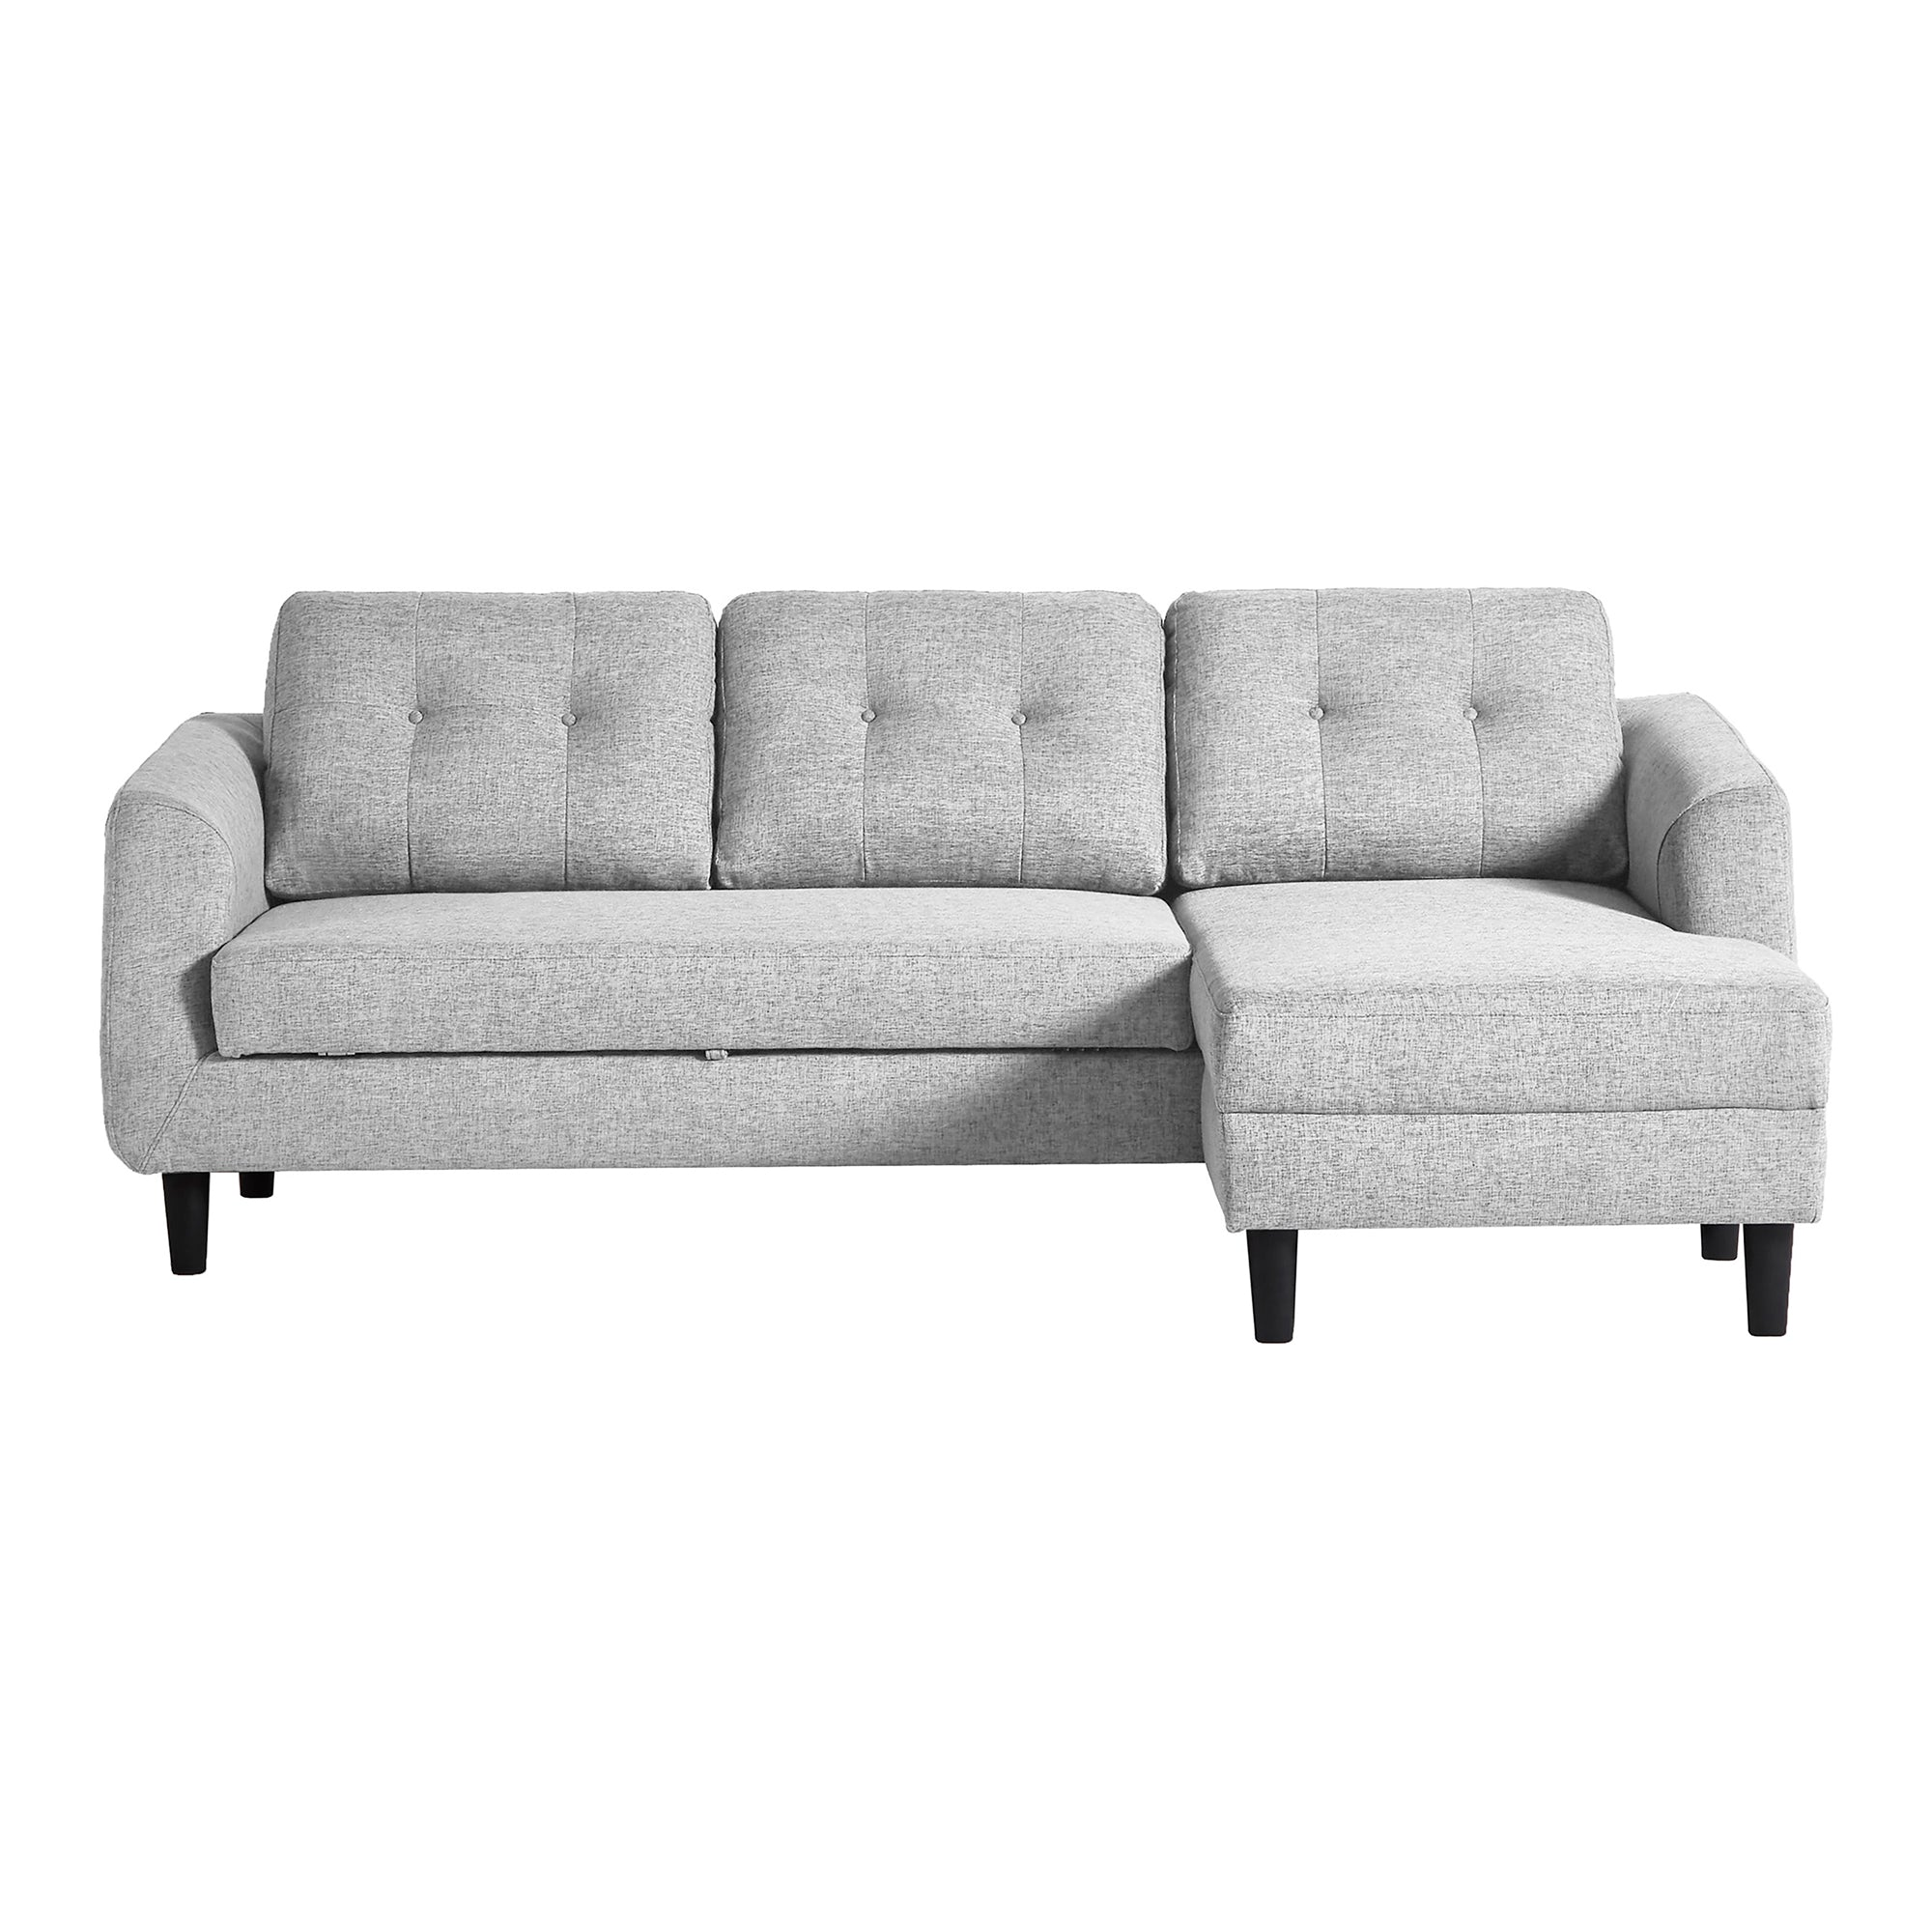 Belagio right facing sofa bed with chaise, grey - Tops-Dress